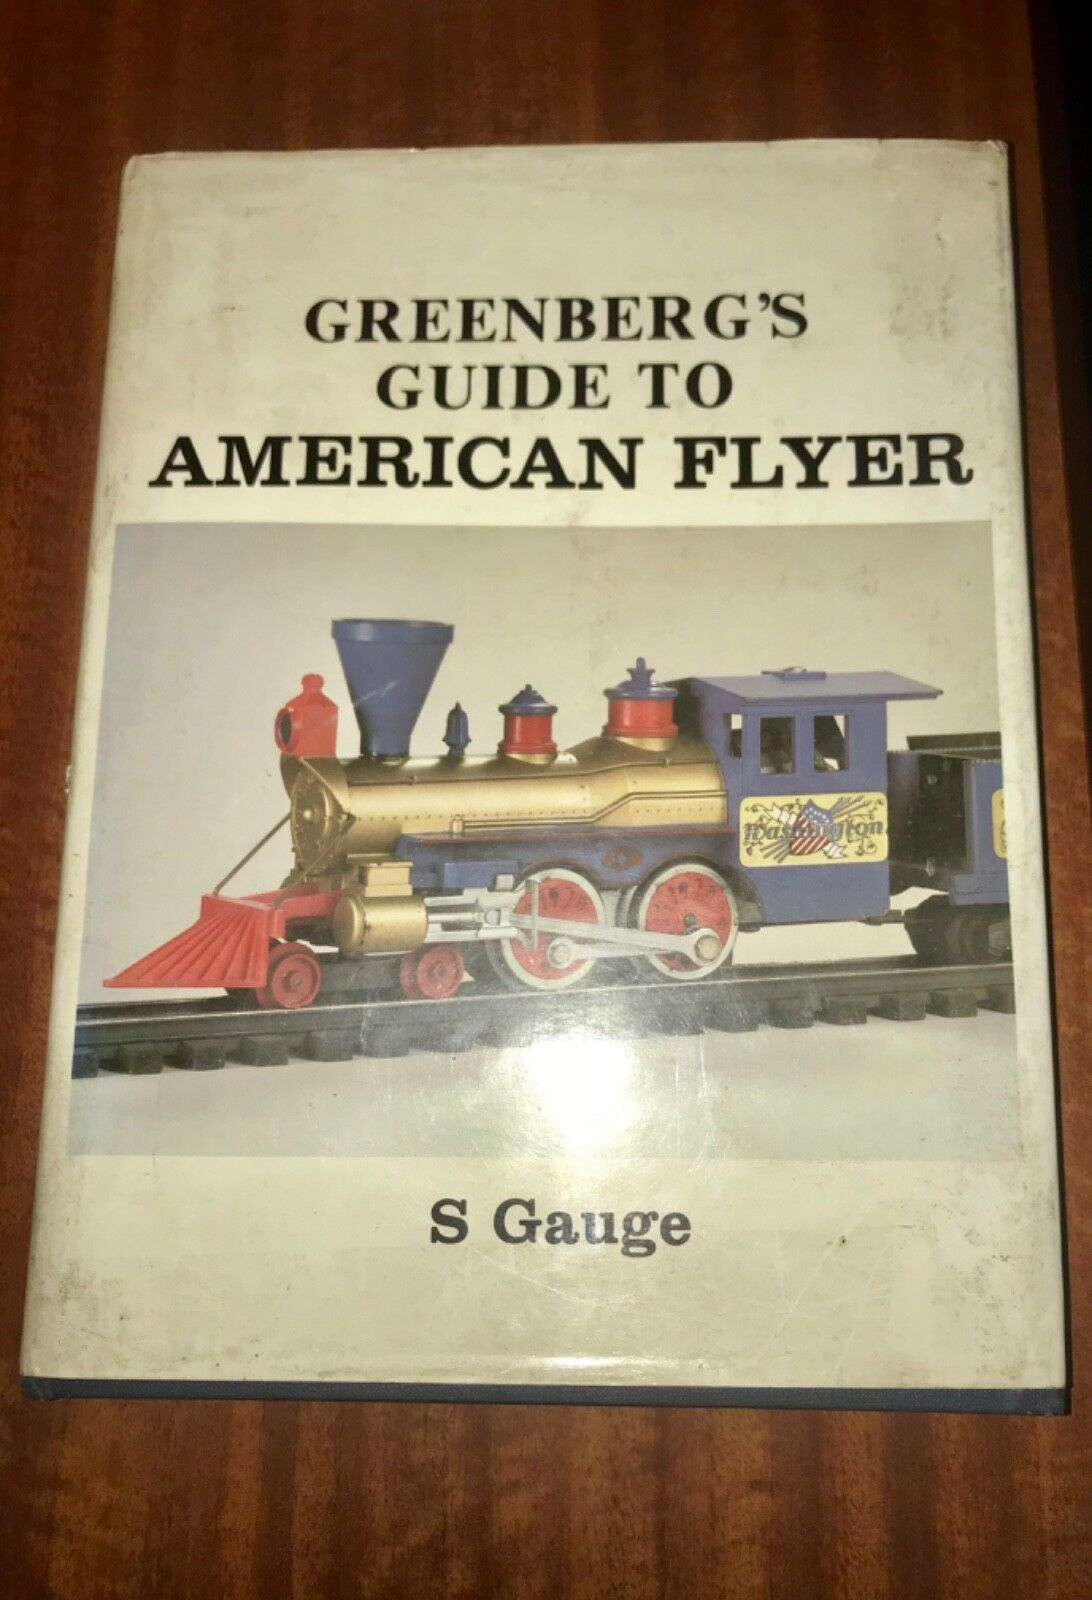 Verdeberg's Guide to American Flyer S Gauge 1984 Color Photos of Trains